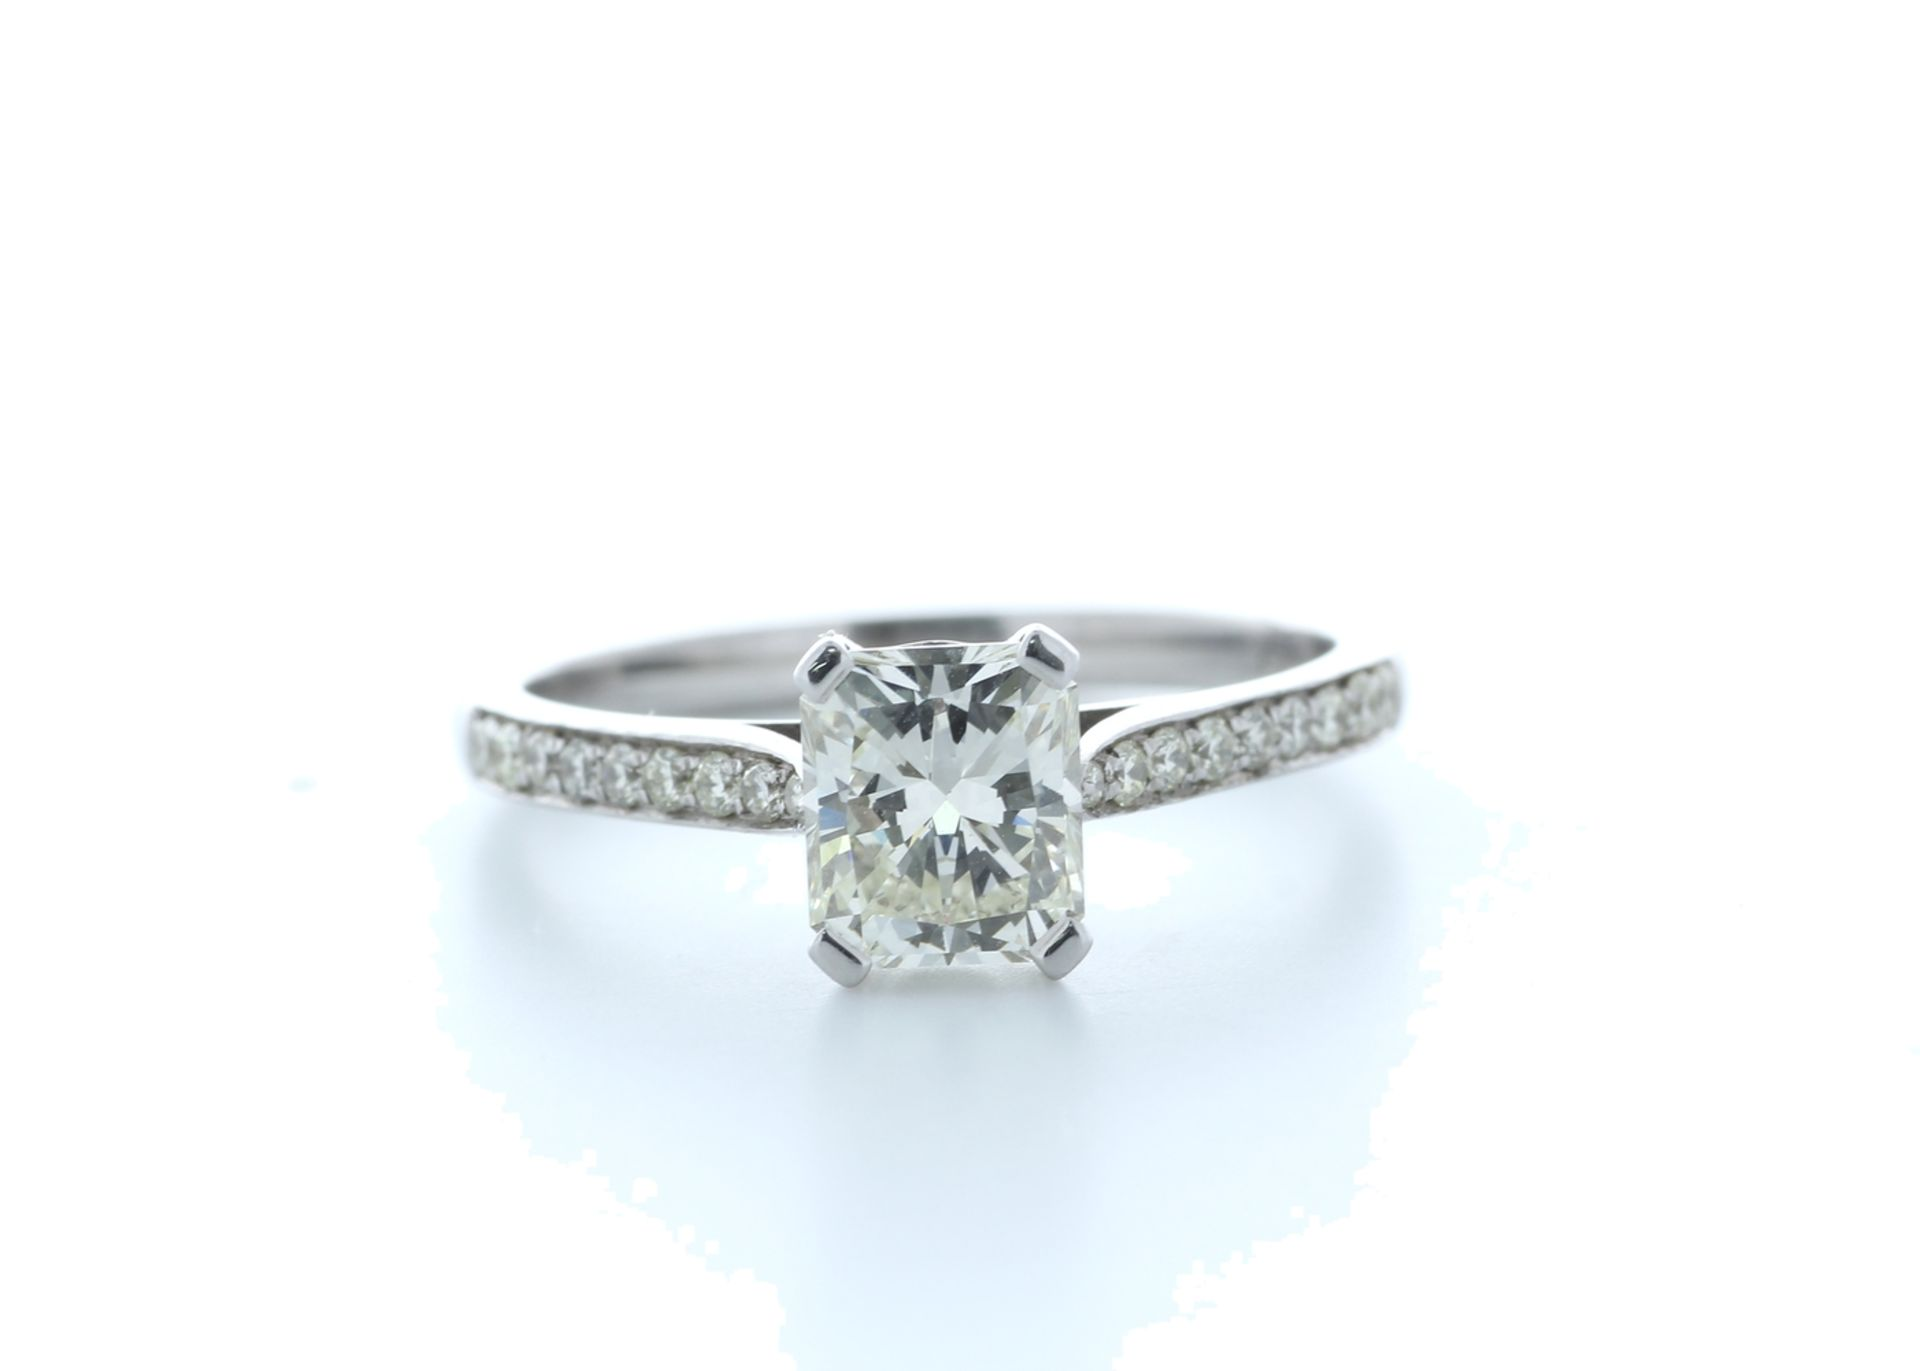 18ct White Gold Radiant Cut Diamond Ring 1.23 (1.08) Carats - Valued by IDI £19,500.00 - 18ct